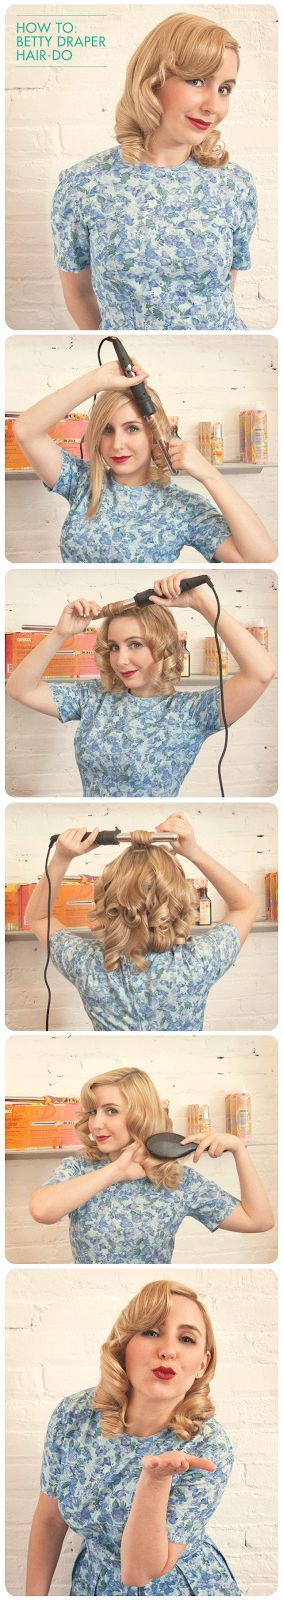 LOVE YOUR HAIR: HOW TO: BETTY DRAPER DO